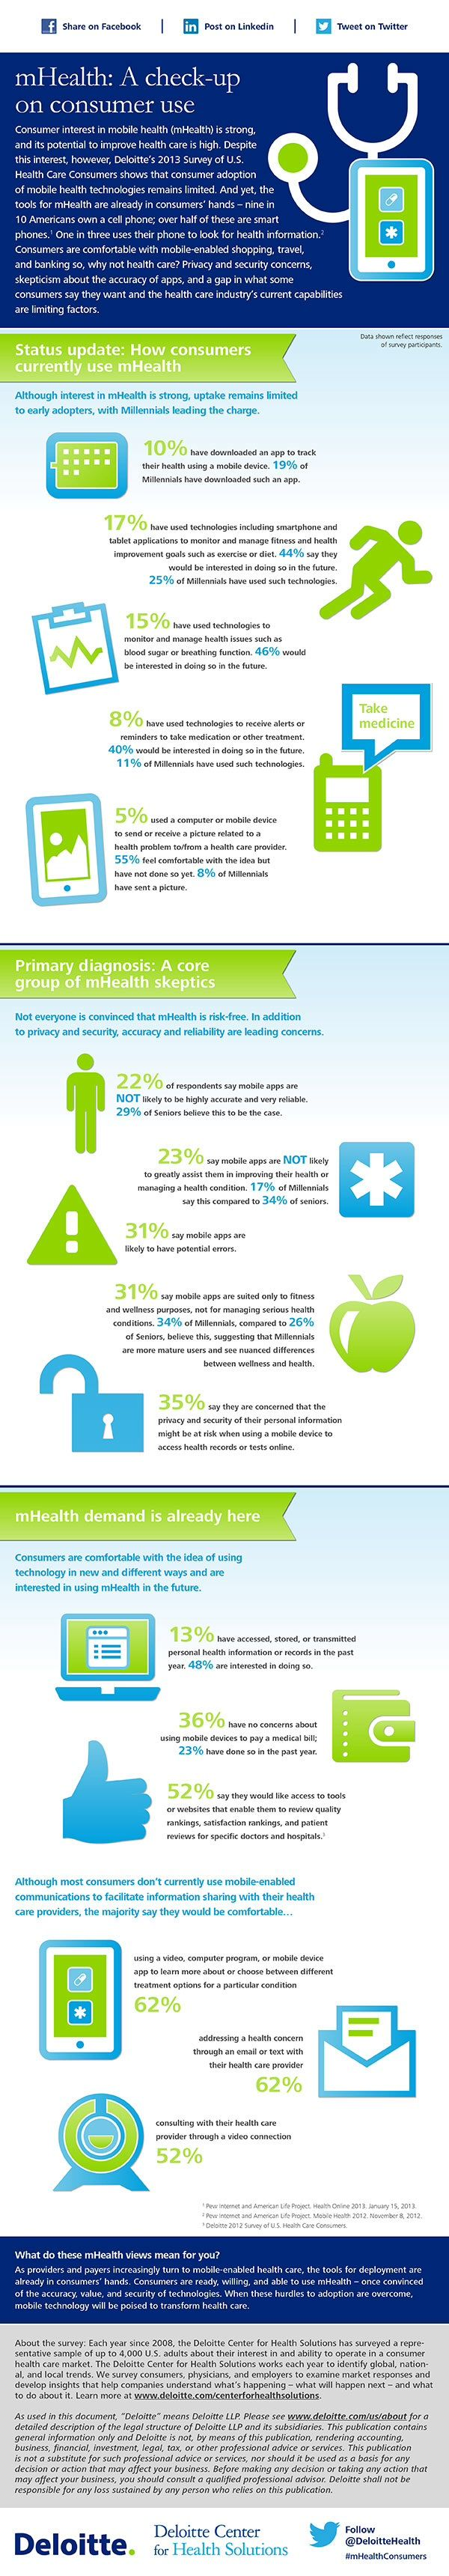 Infographic—mHealth: A check-up on consumer use. Via @Deloitte Health: Mobiles Health, Health Care, Infographic Mhealth, Healthcare Infographic, Ehealth App, Digital Healthcare, Health Infographic, Consumer Current, Healthcare Trends